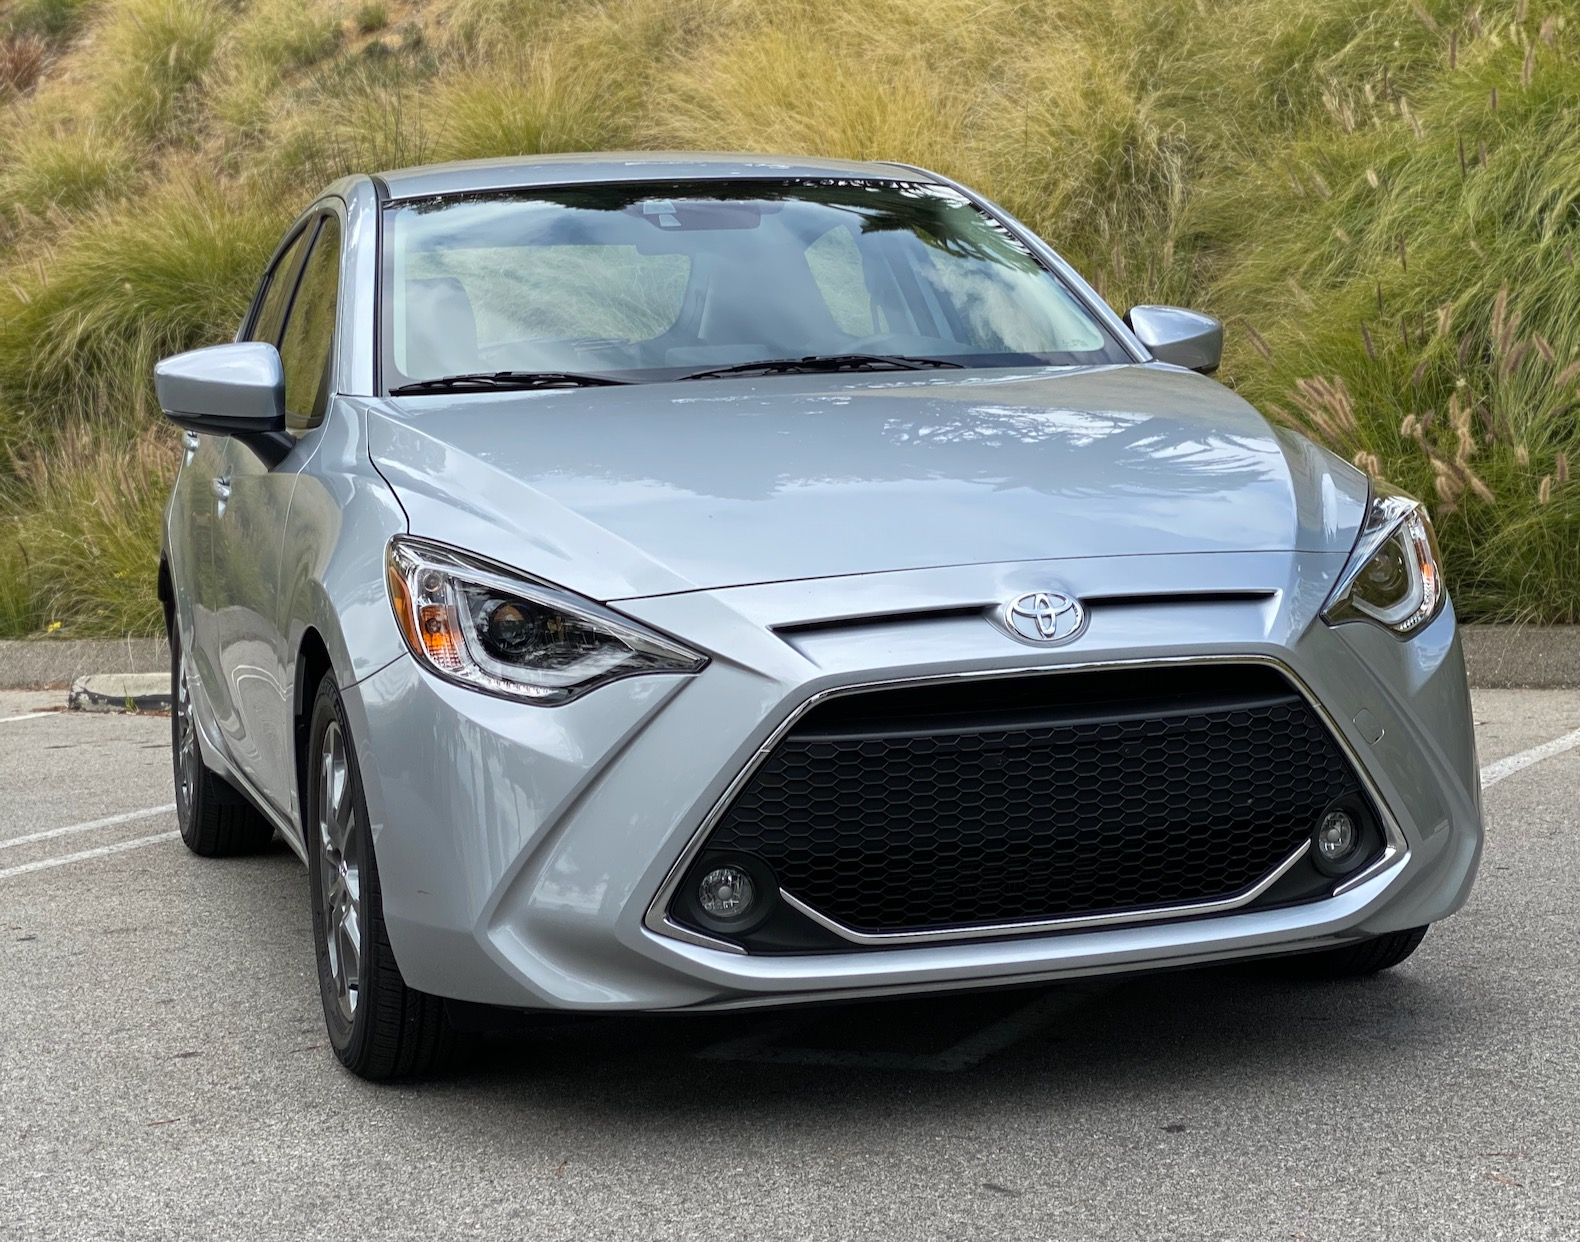 2020 Toyota Yaris Hatchback Review: A fun-to-drive value ...